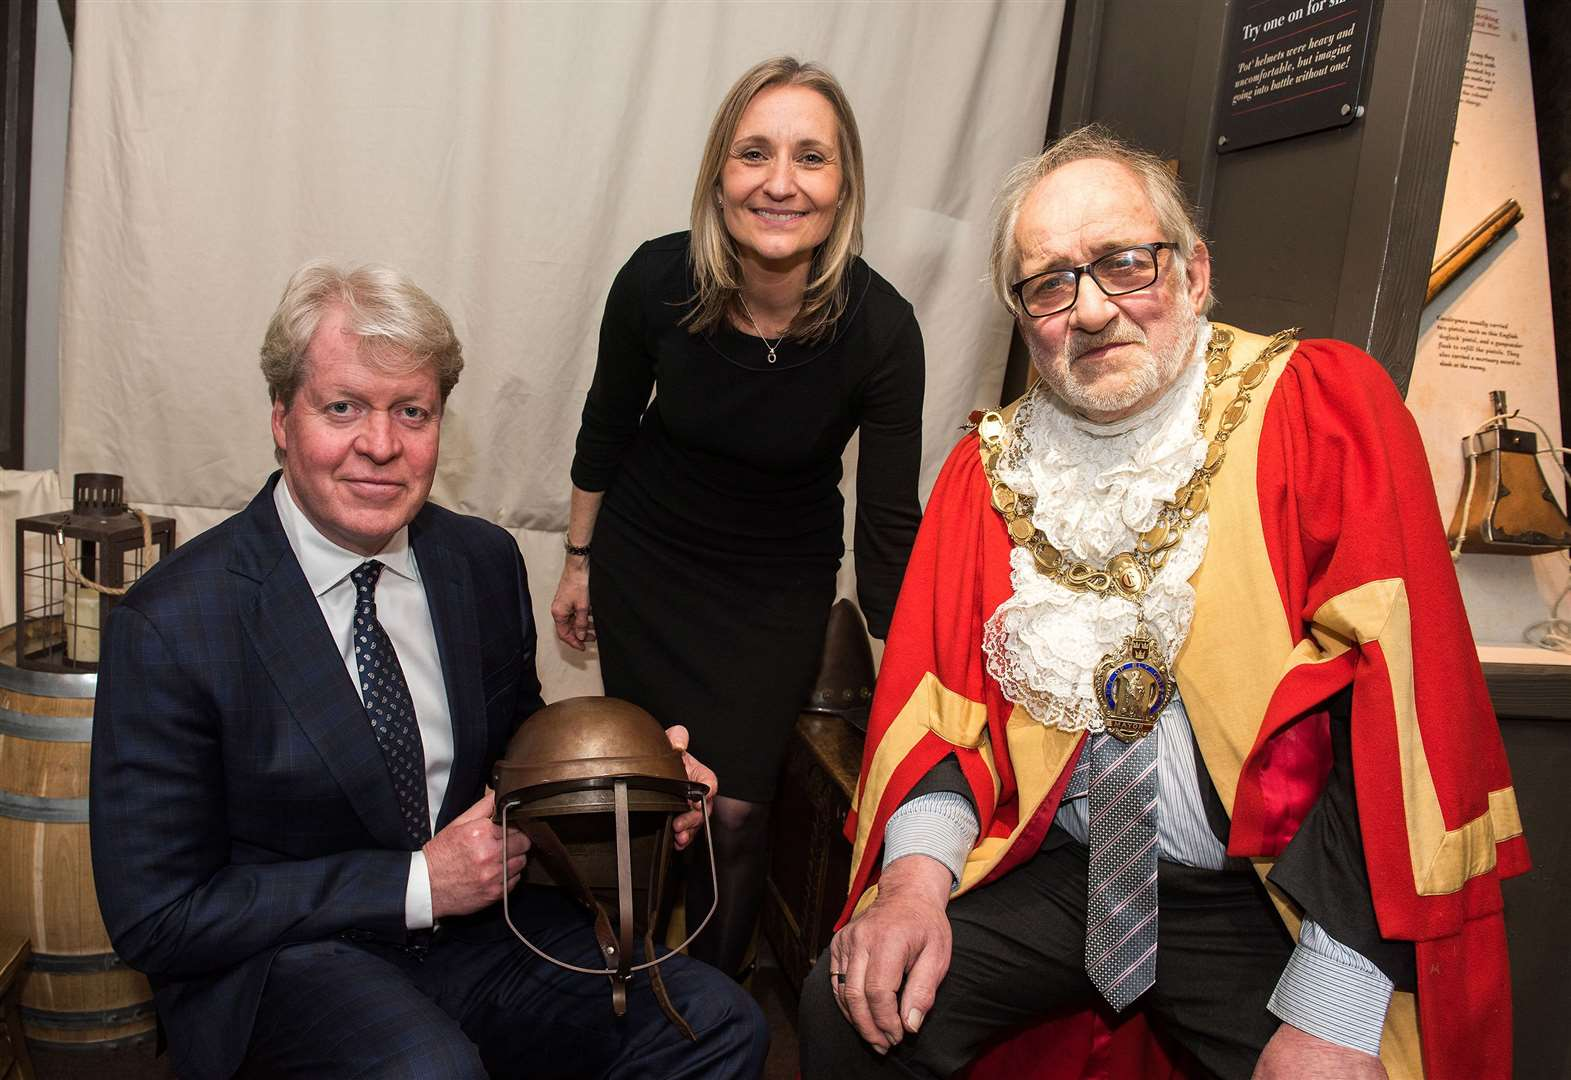 Cromwell's house is re-opened by Earl Spencer